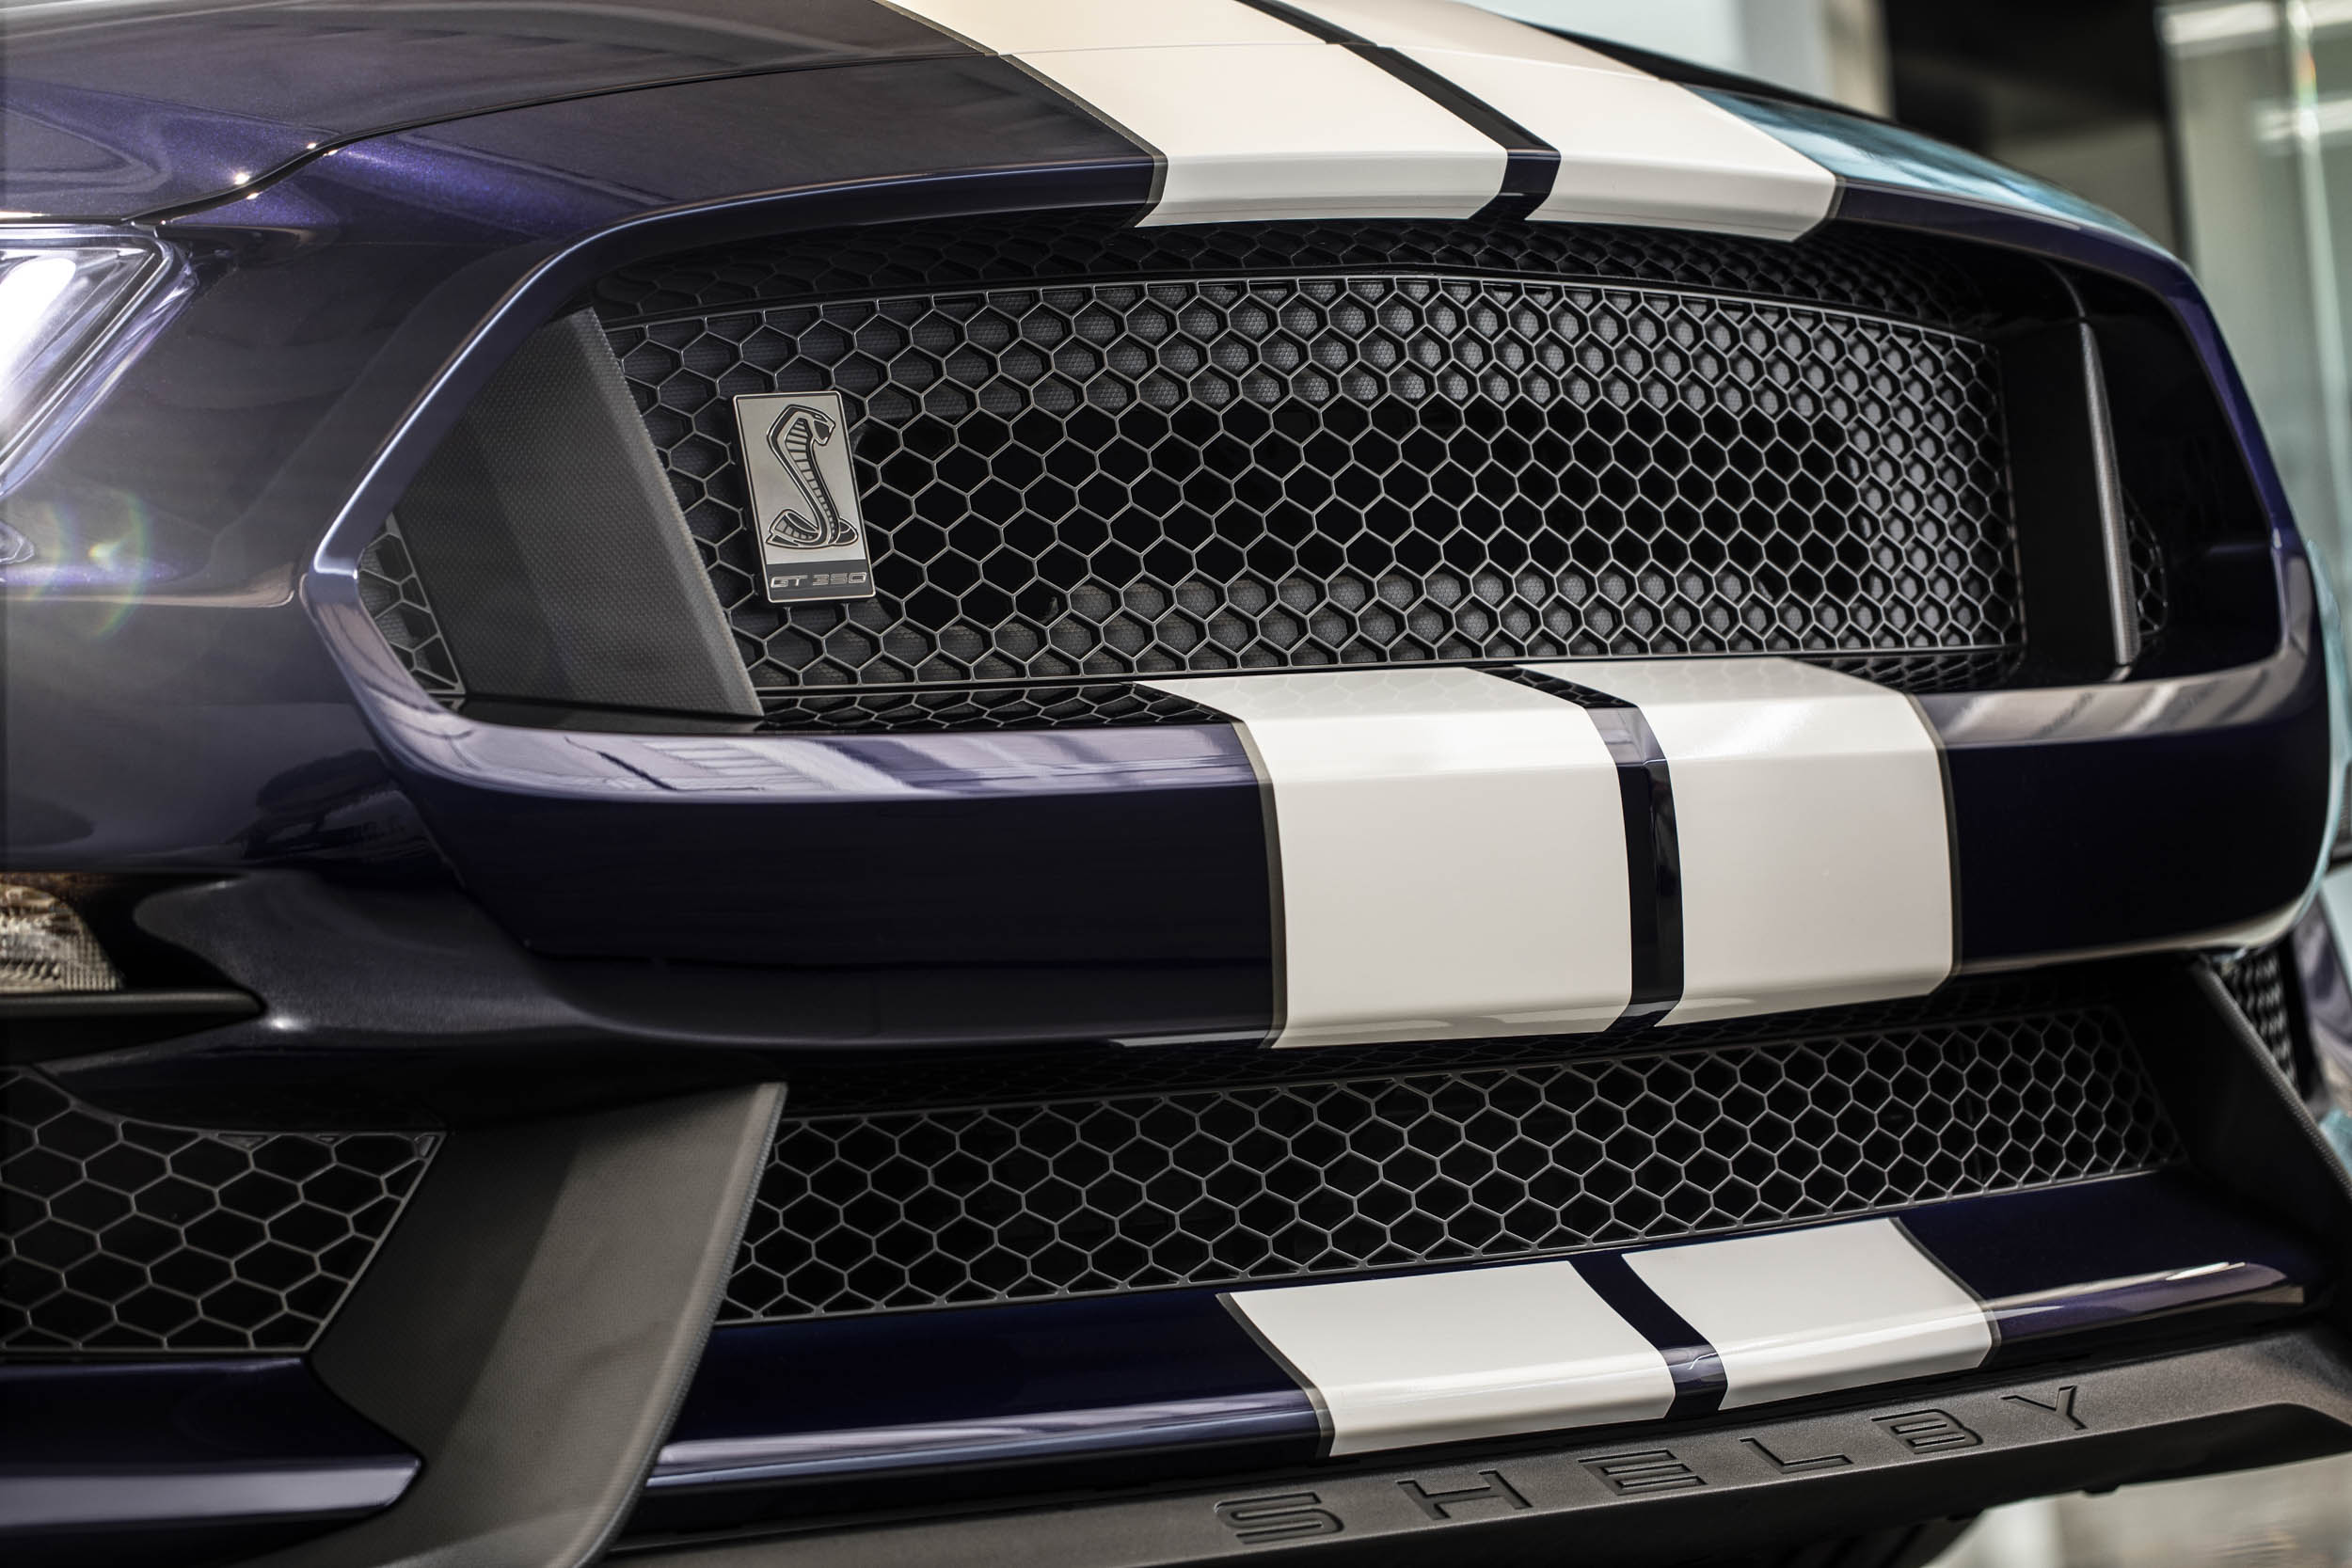 2019 Shelby GT350 grille detail